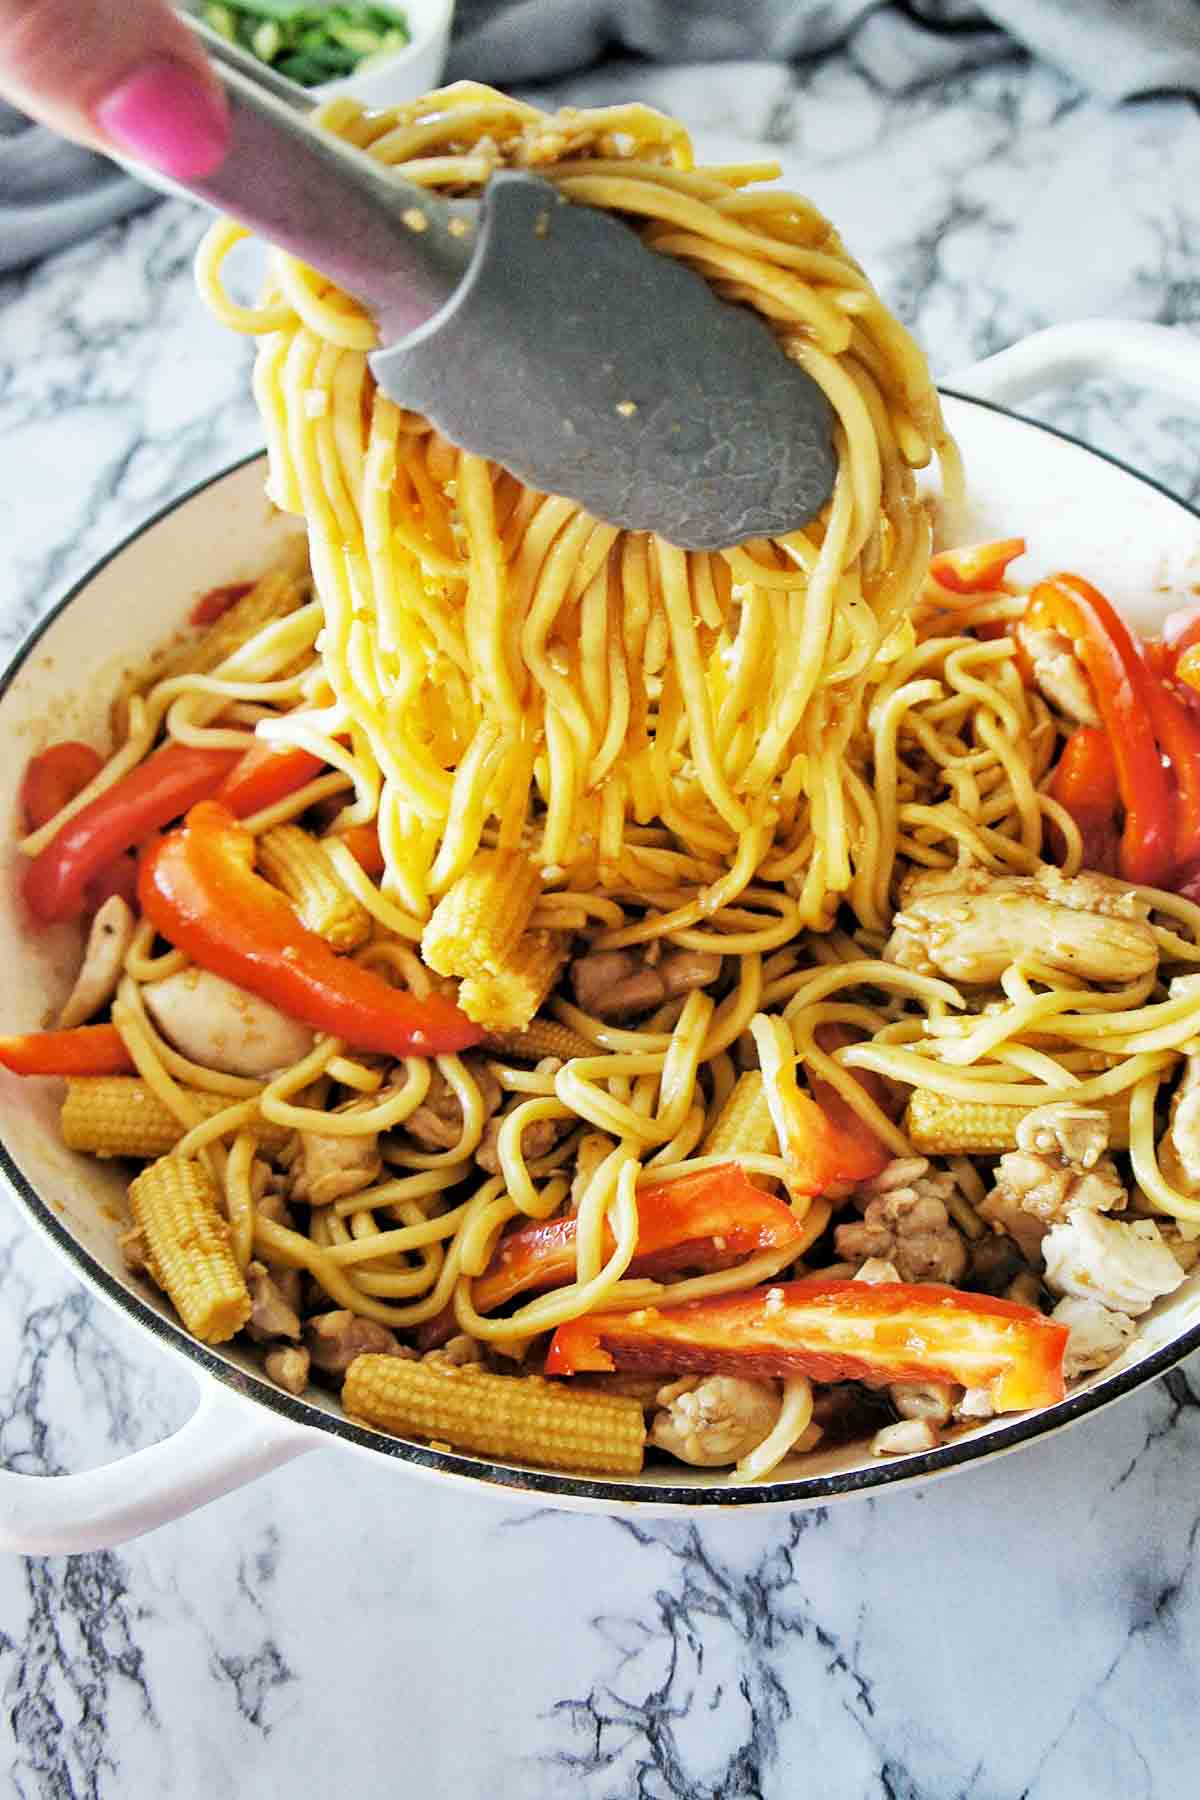 Hokkien Noodles being added to fry pan with chicken and vegetables